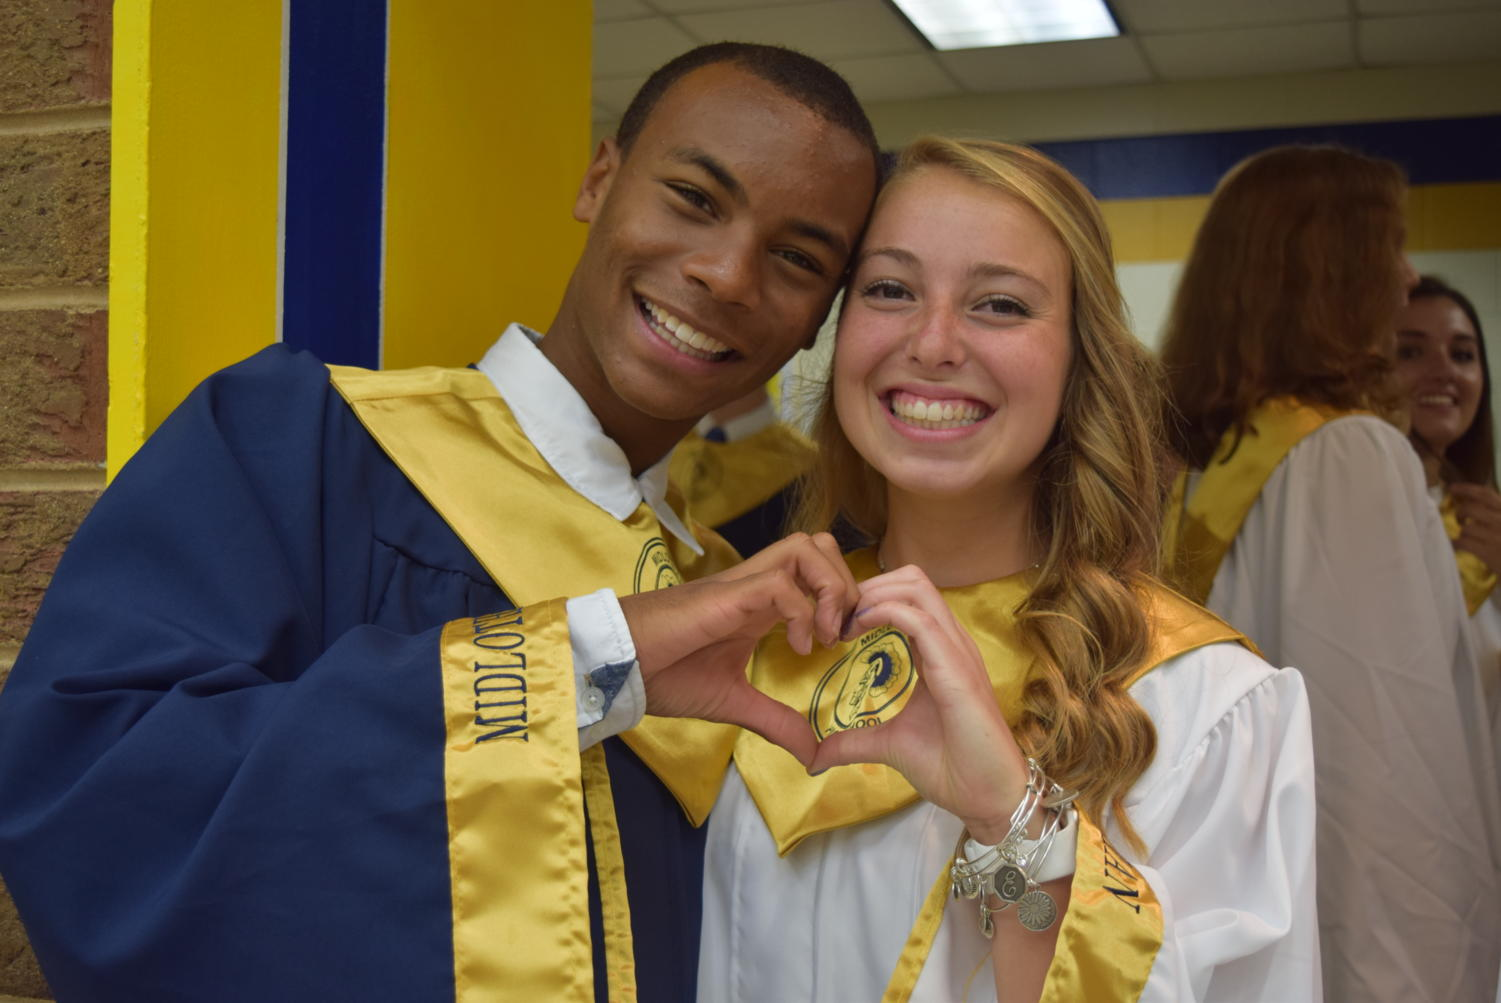 BJ Beckwith and Eva Johnson show their love of the Class of 2018.